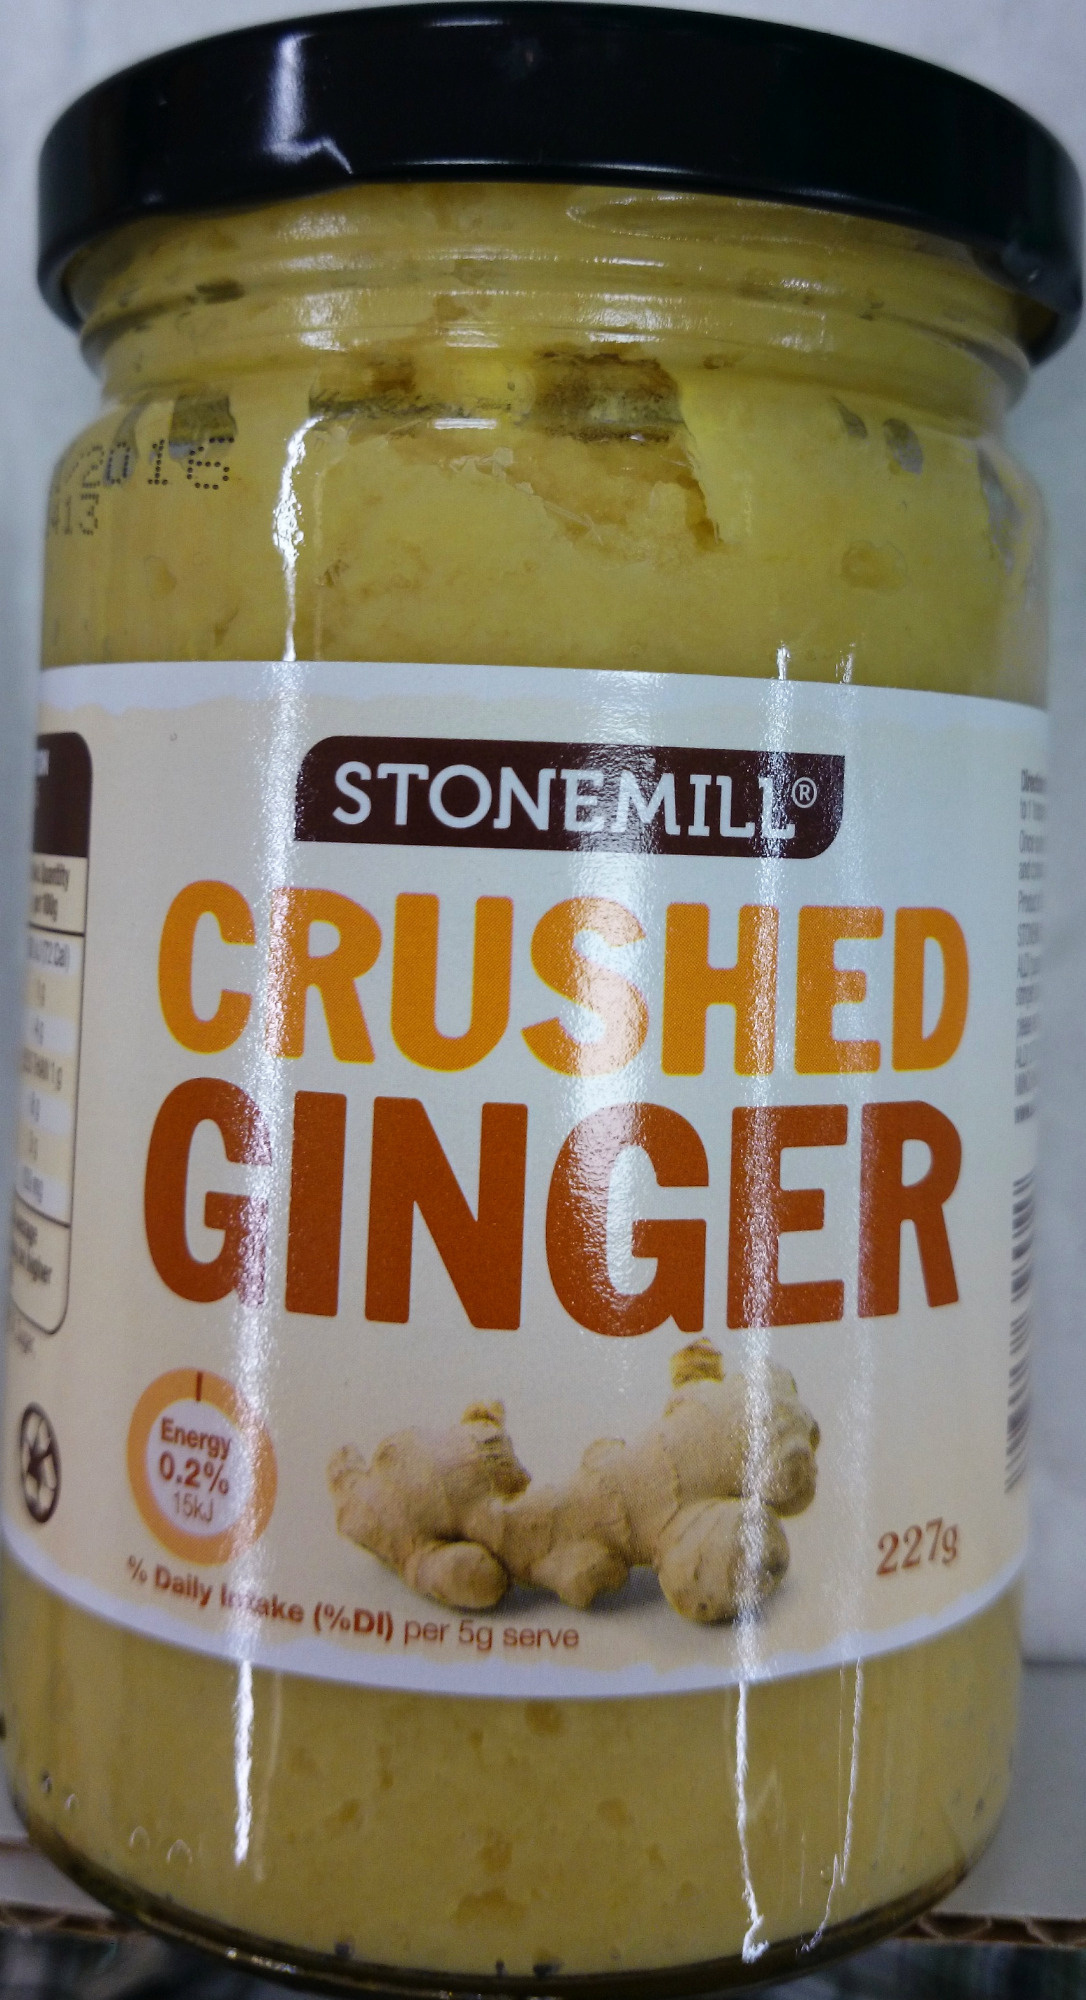 Stonemill Crushed Ginger - Product - en